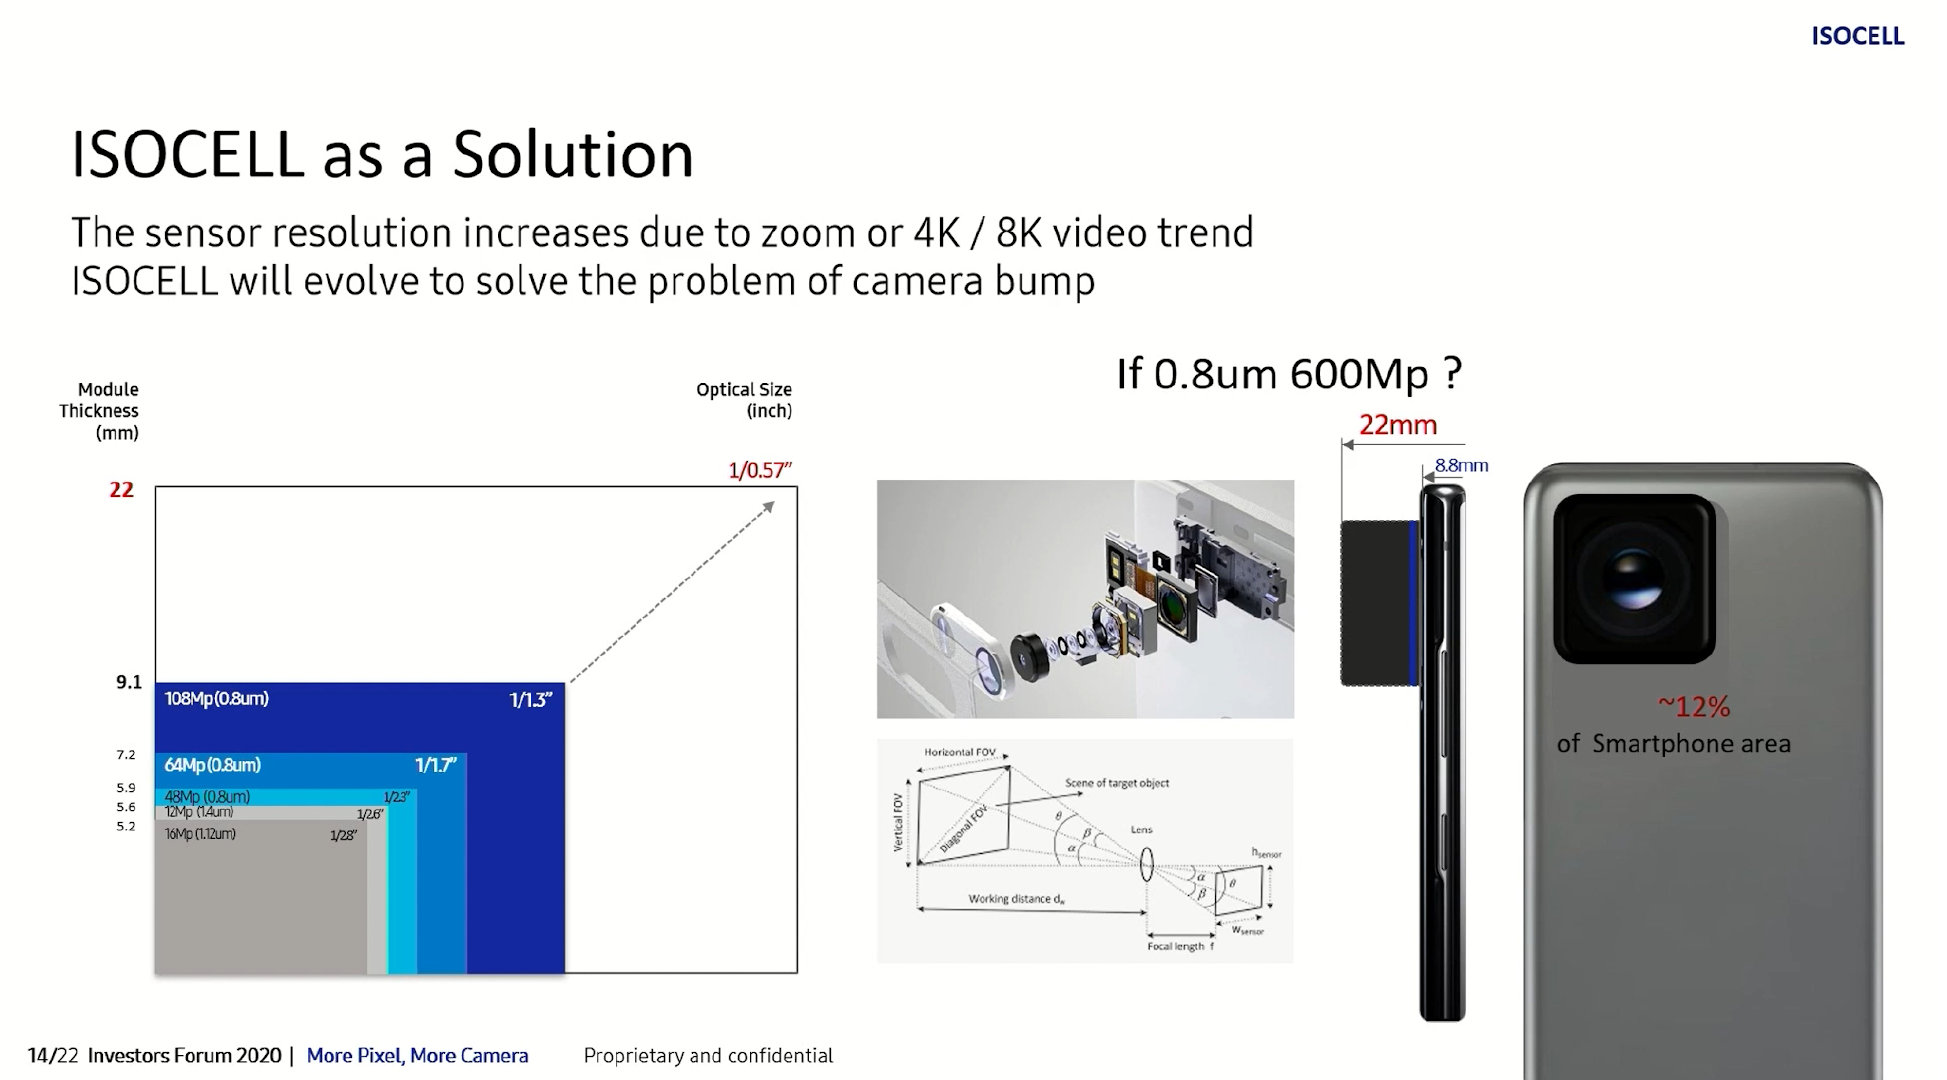 Samsung ISOCELL 600 Megapixel